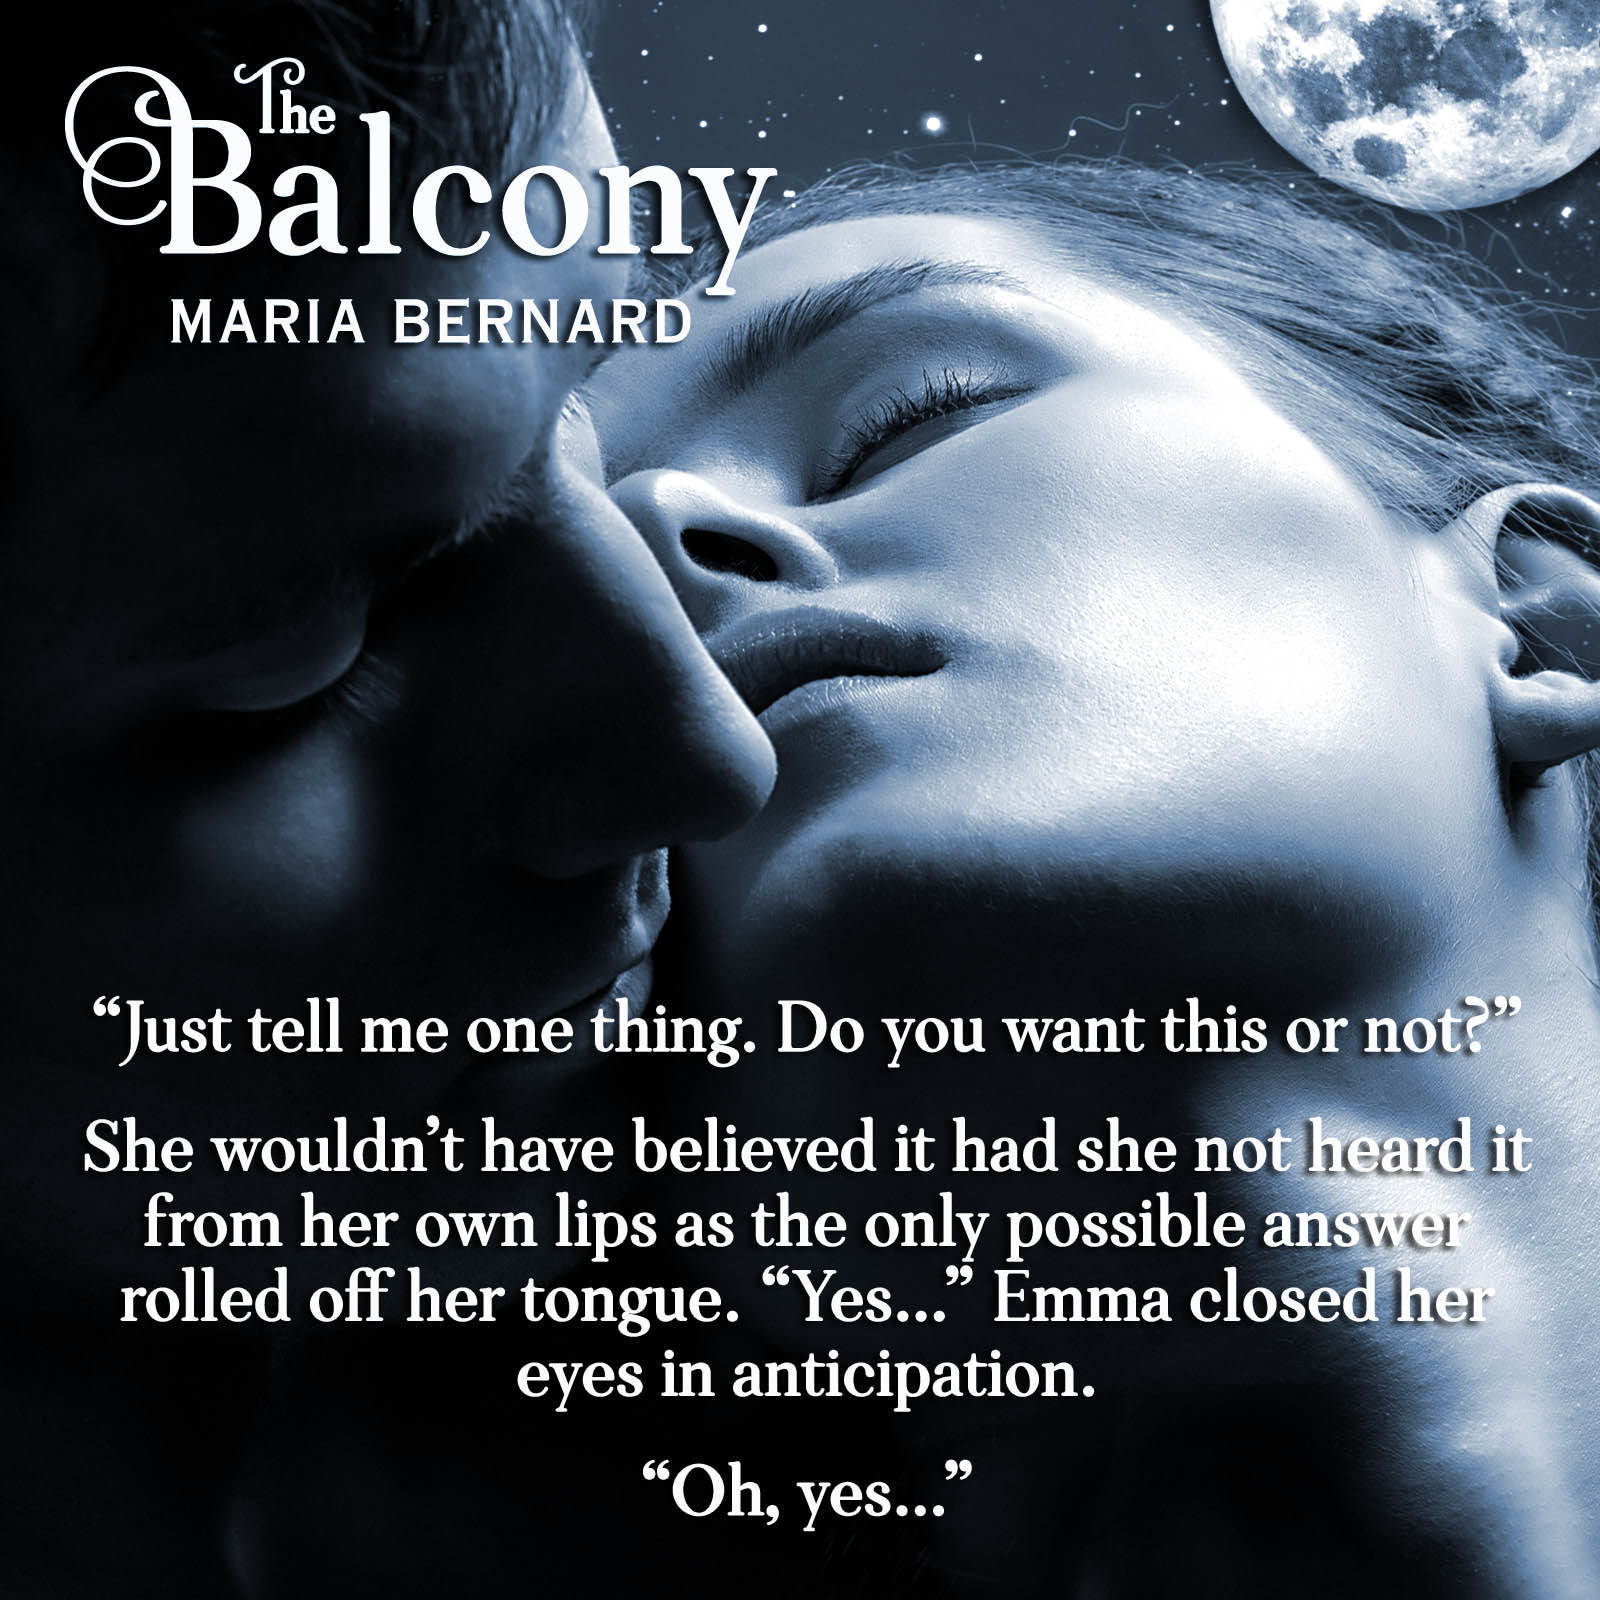 The Balcony, Rockstar Romance, Paranormal Romance, Angels and Ghosts